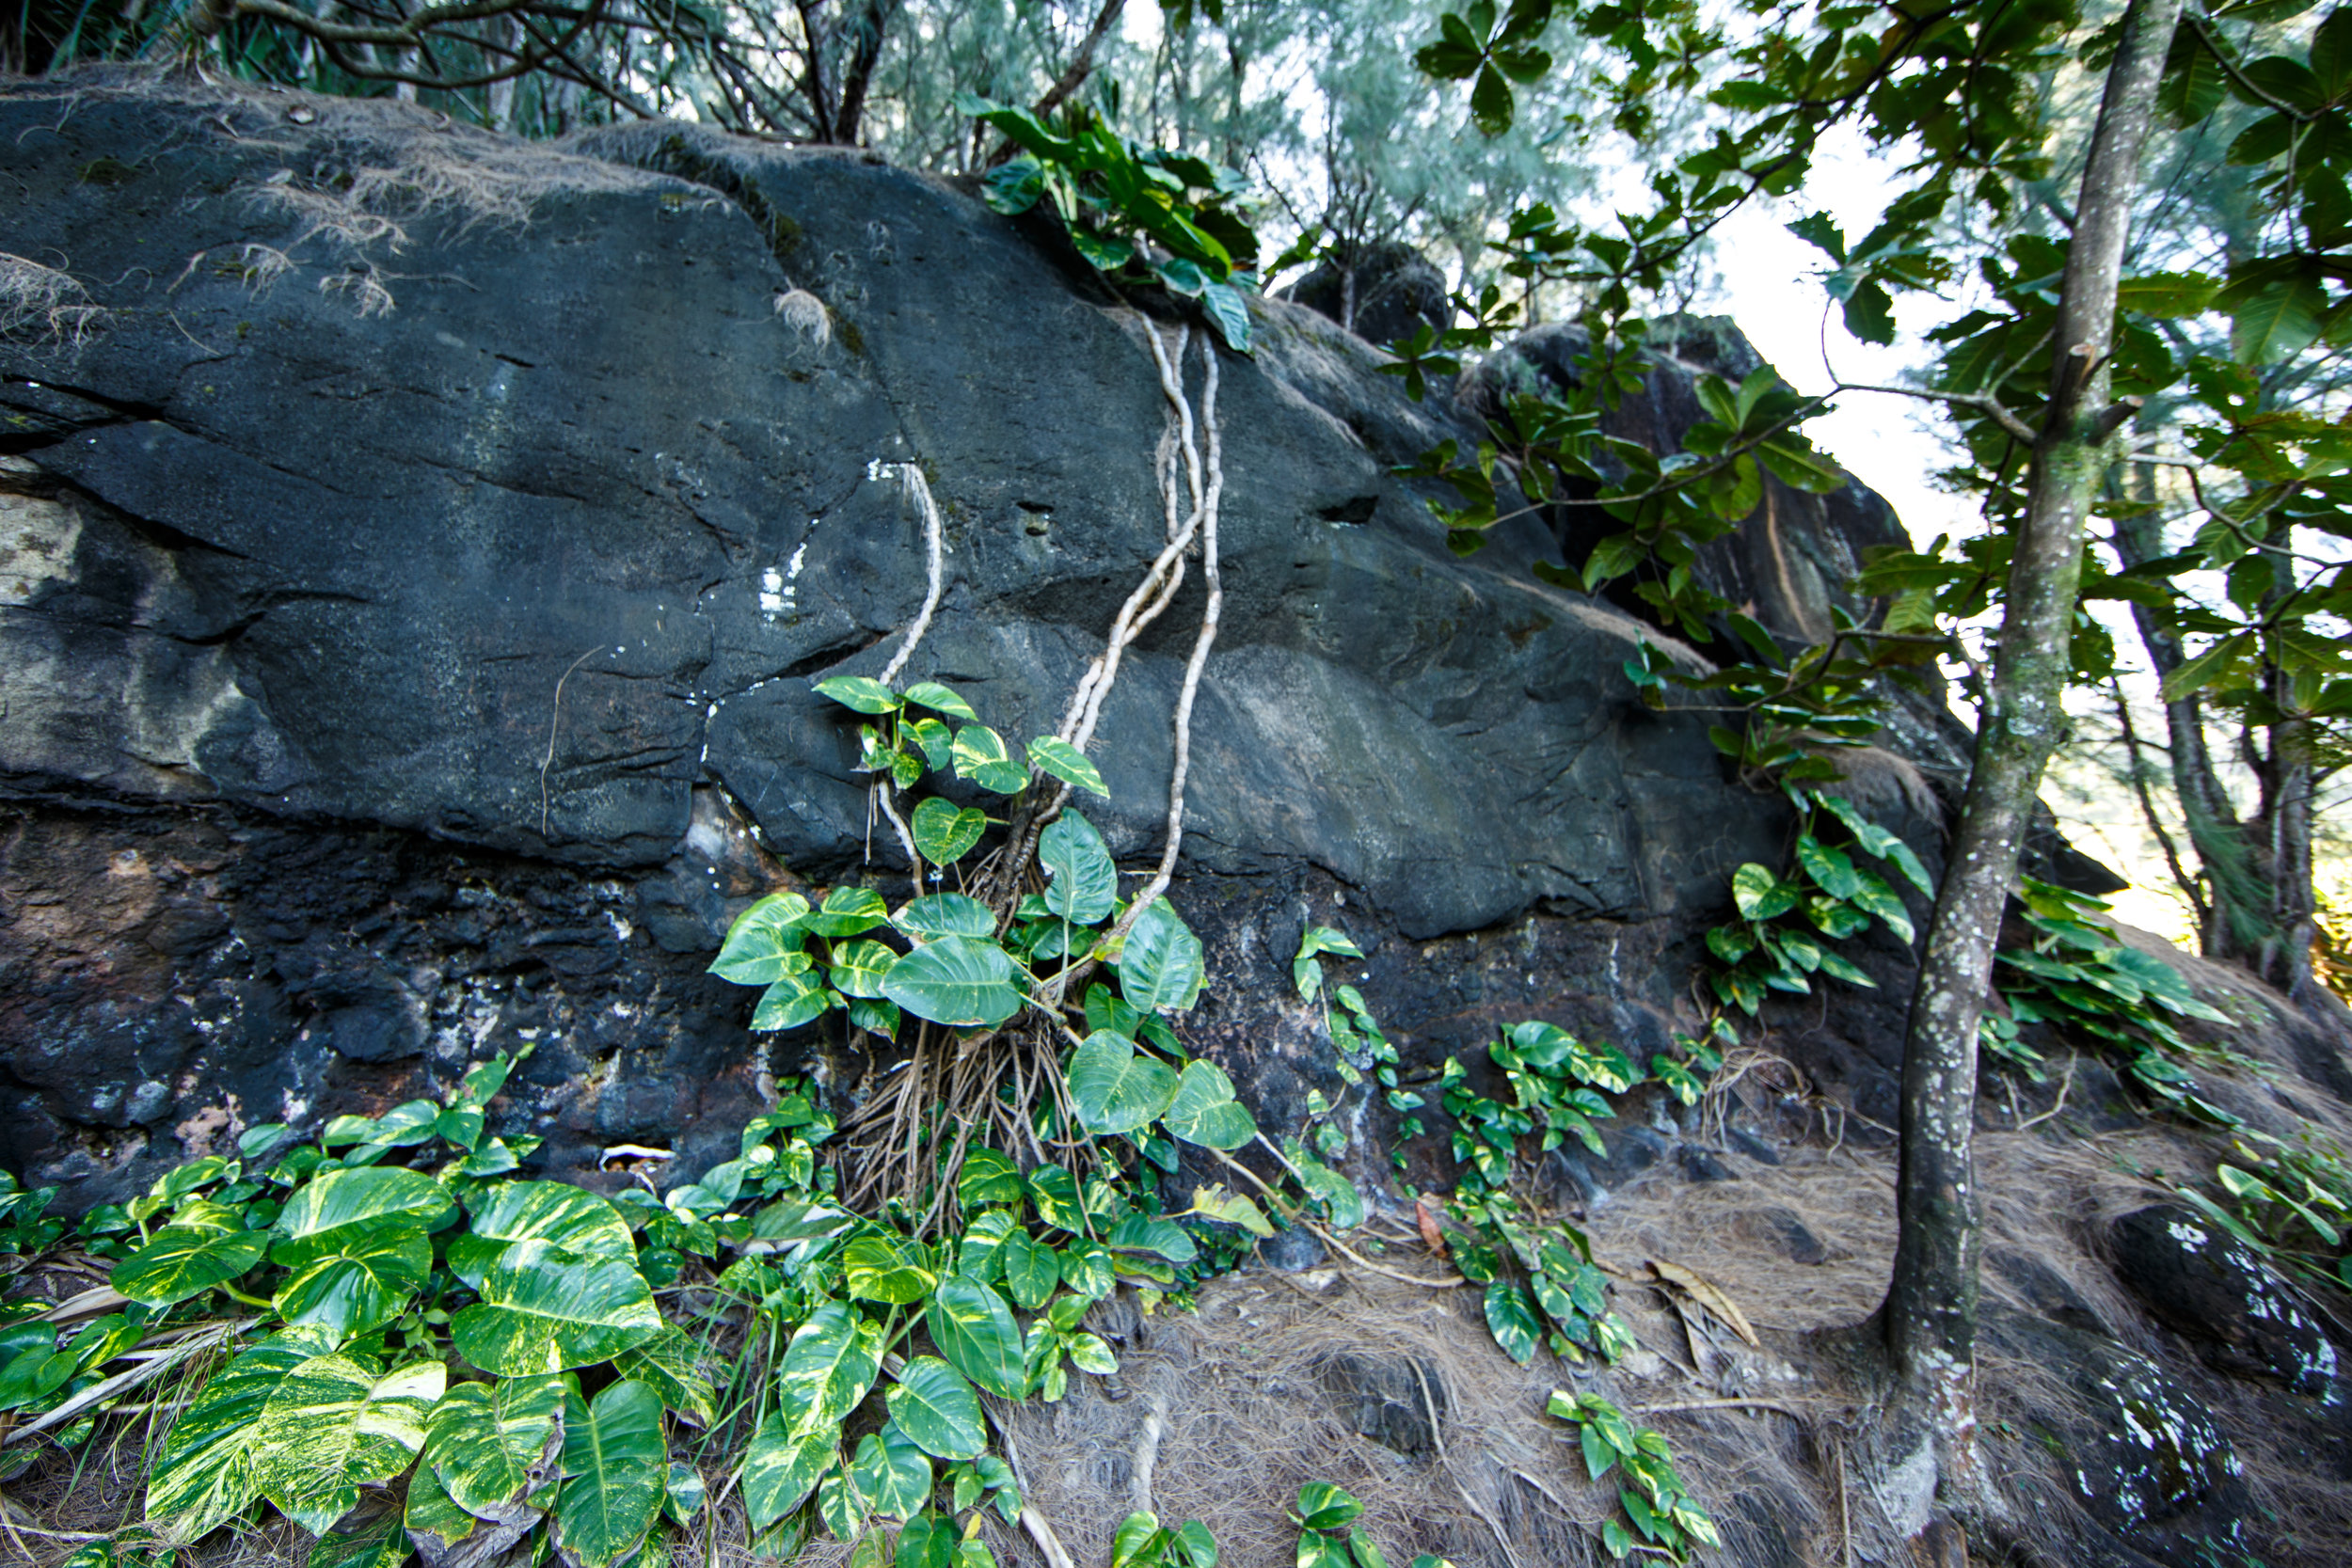 Admiring the plant growth out of the large boulders flanking the trail.